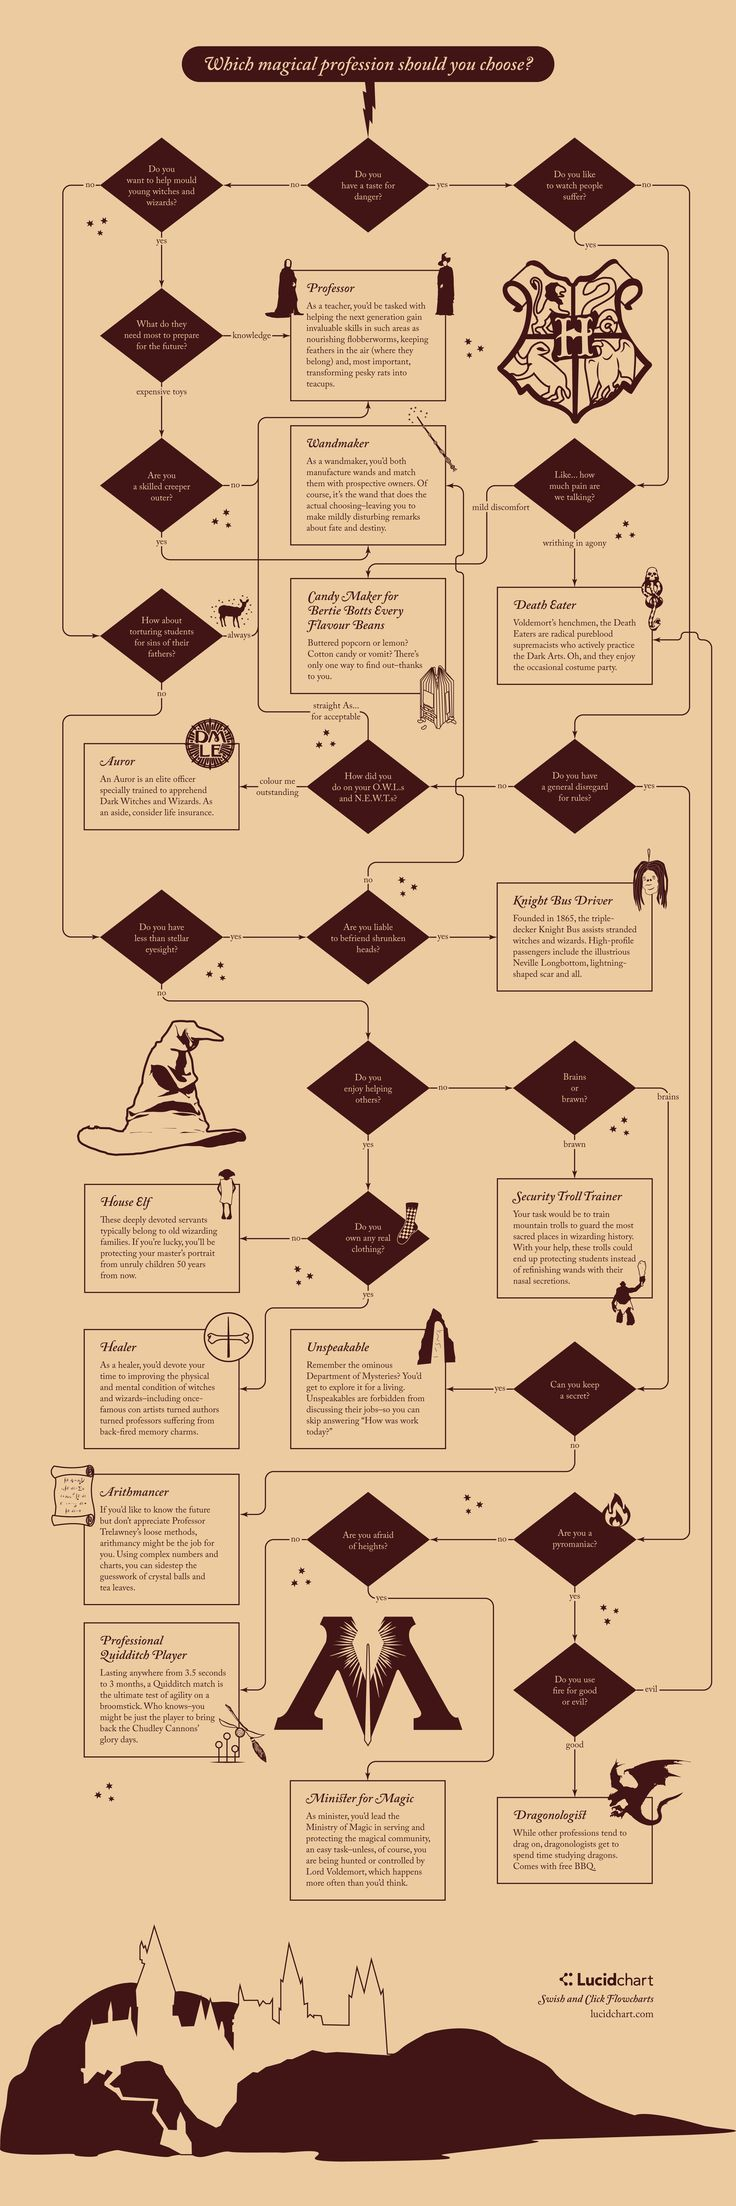 Use flowchart magic to find out what profession you'd have in the Wizarding World!